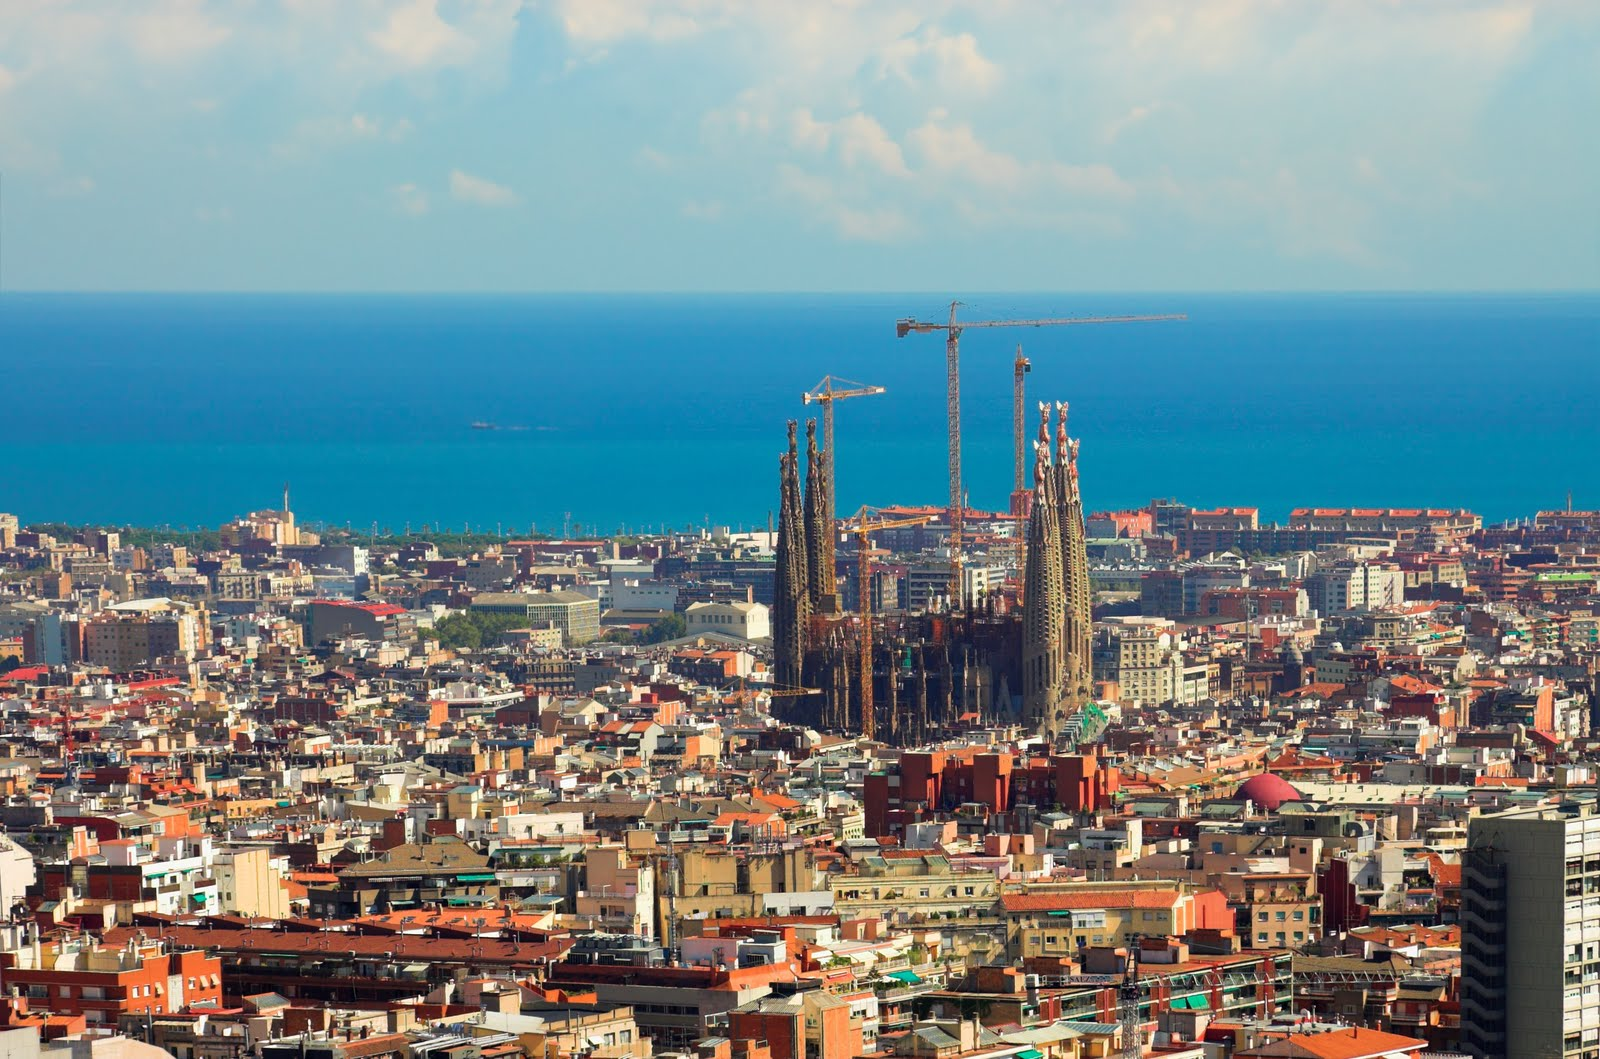 Discovery Channel Hd Wallpapers 5 Fun Facts About Barcelona Iese Mba Blog